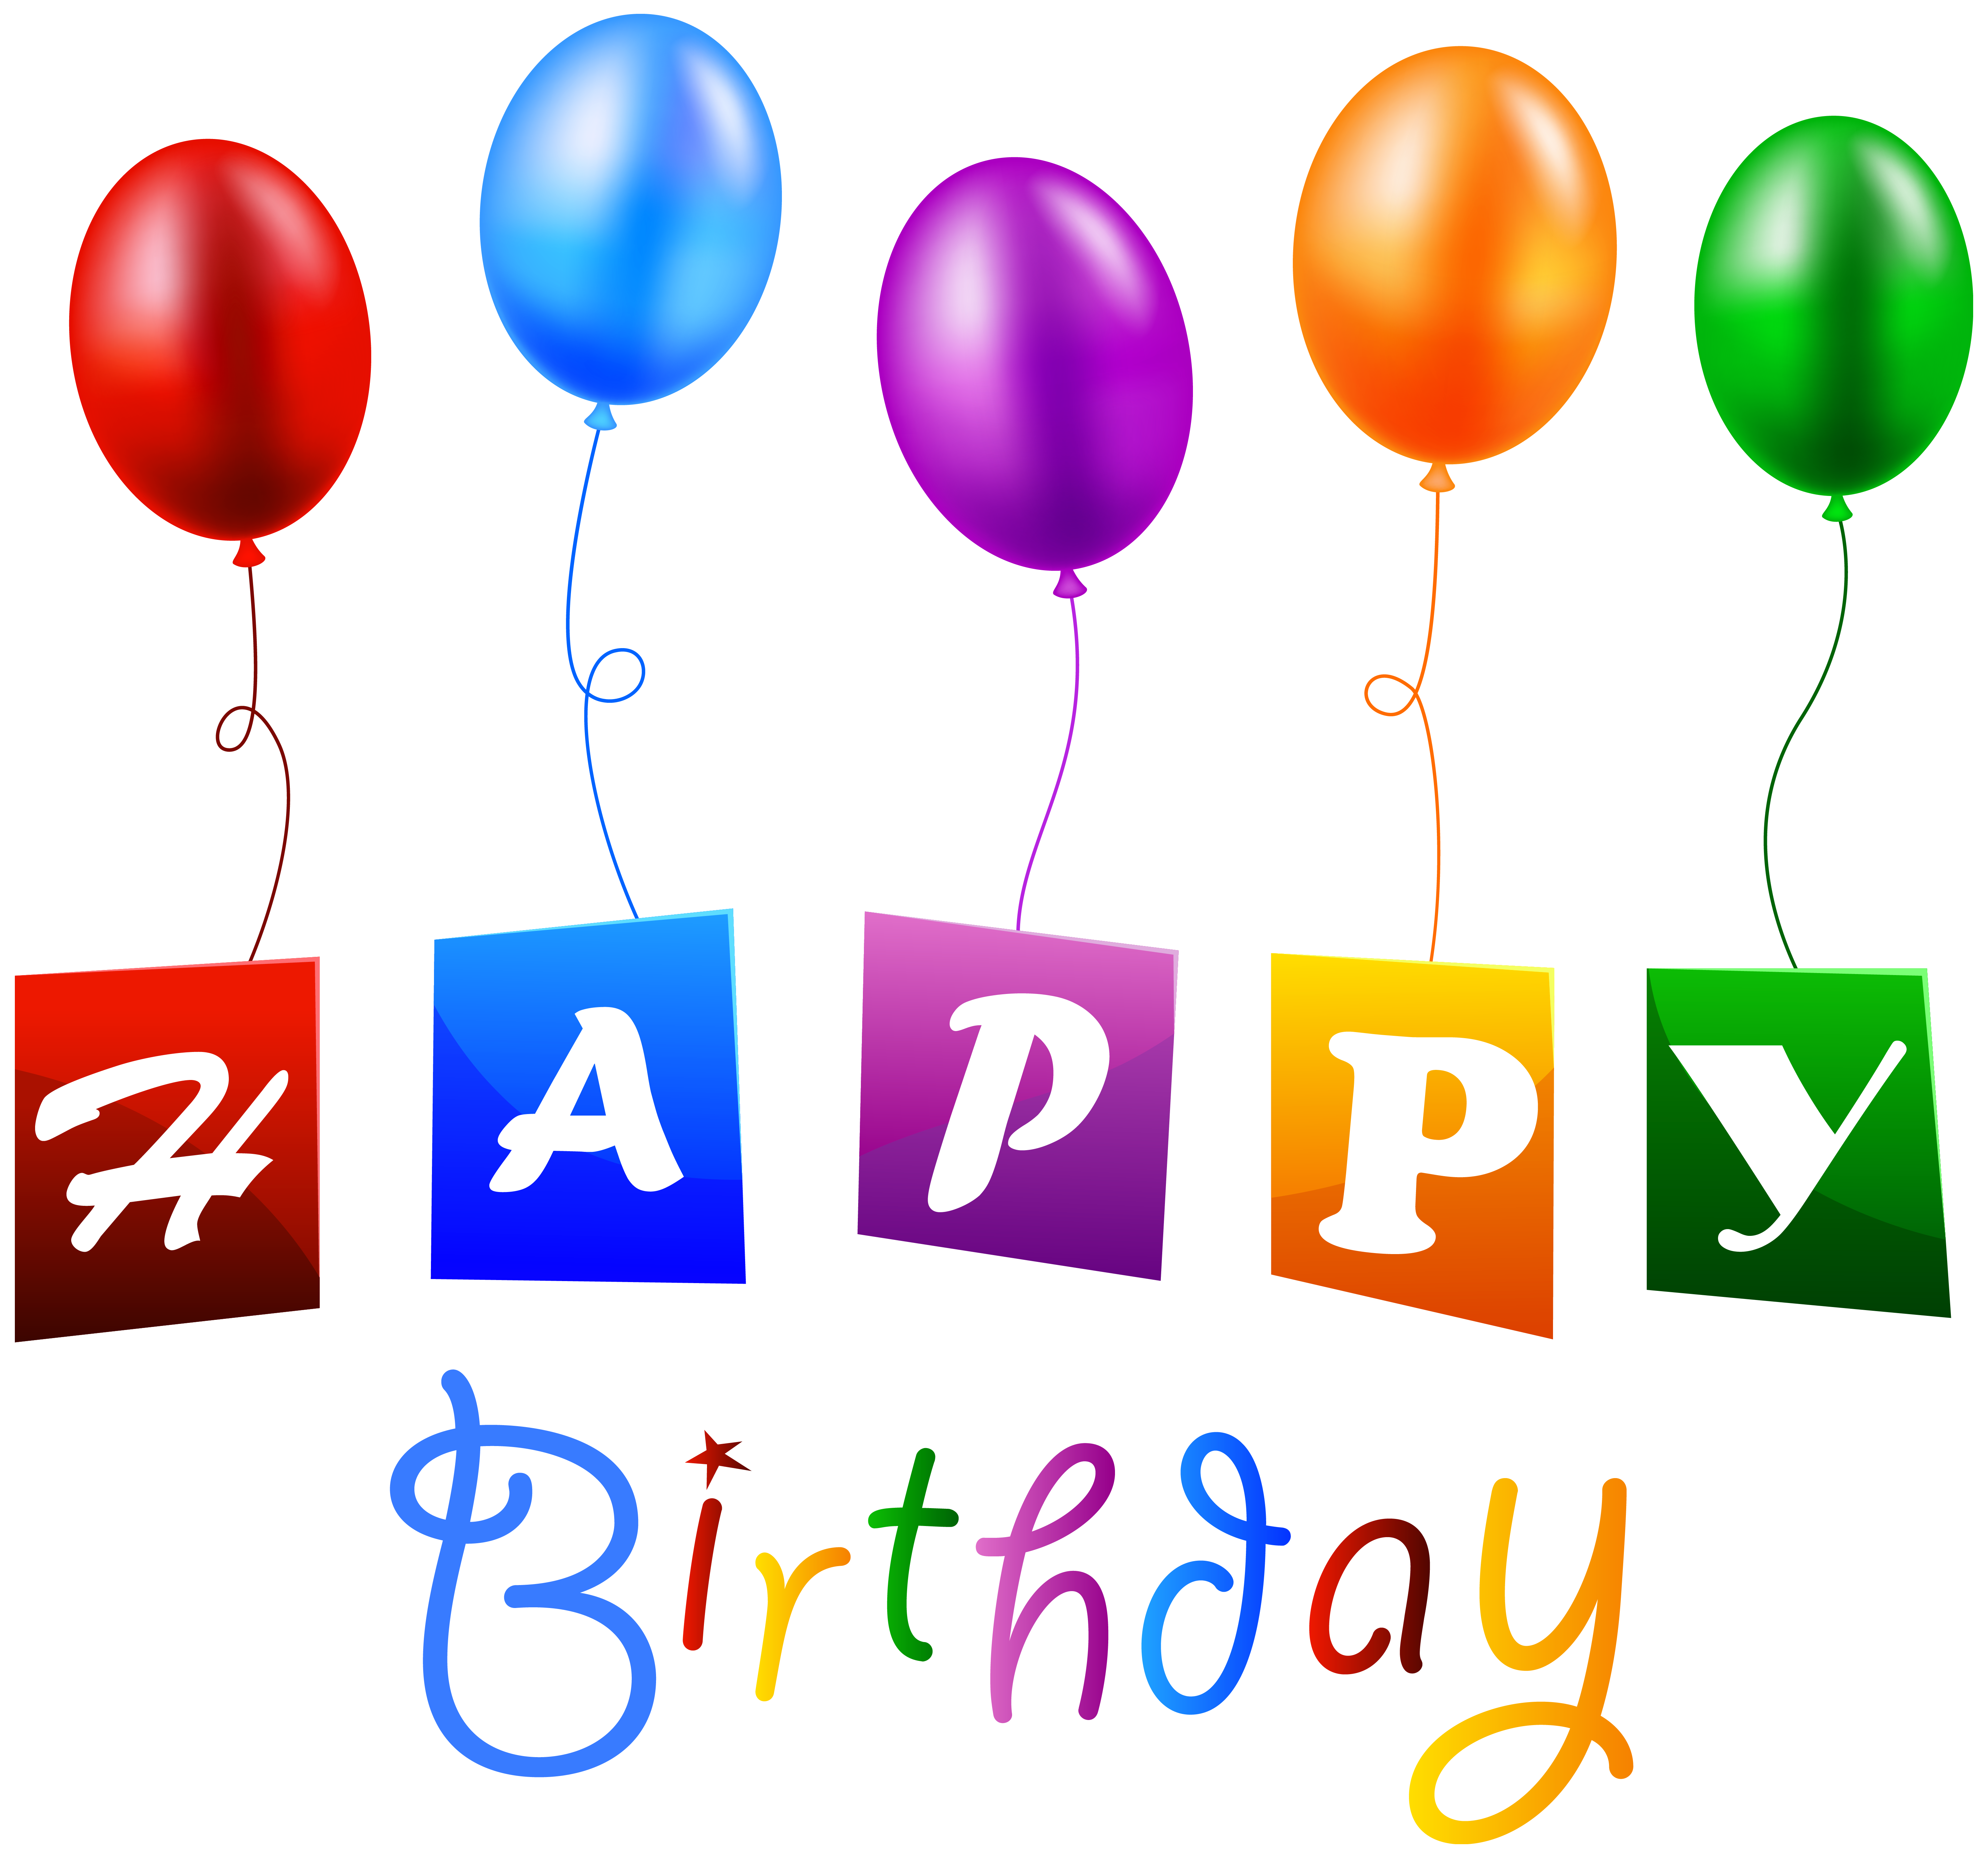 svg transparent stock Th at getdrawings com. Happy birthday friend clipart